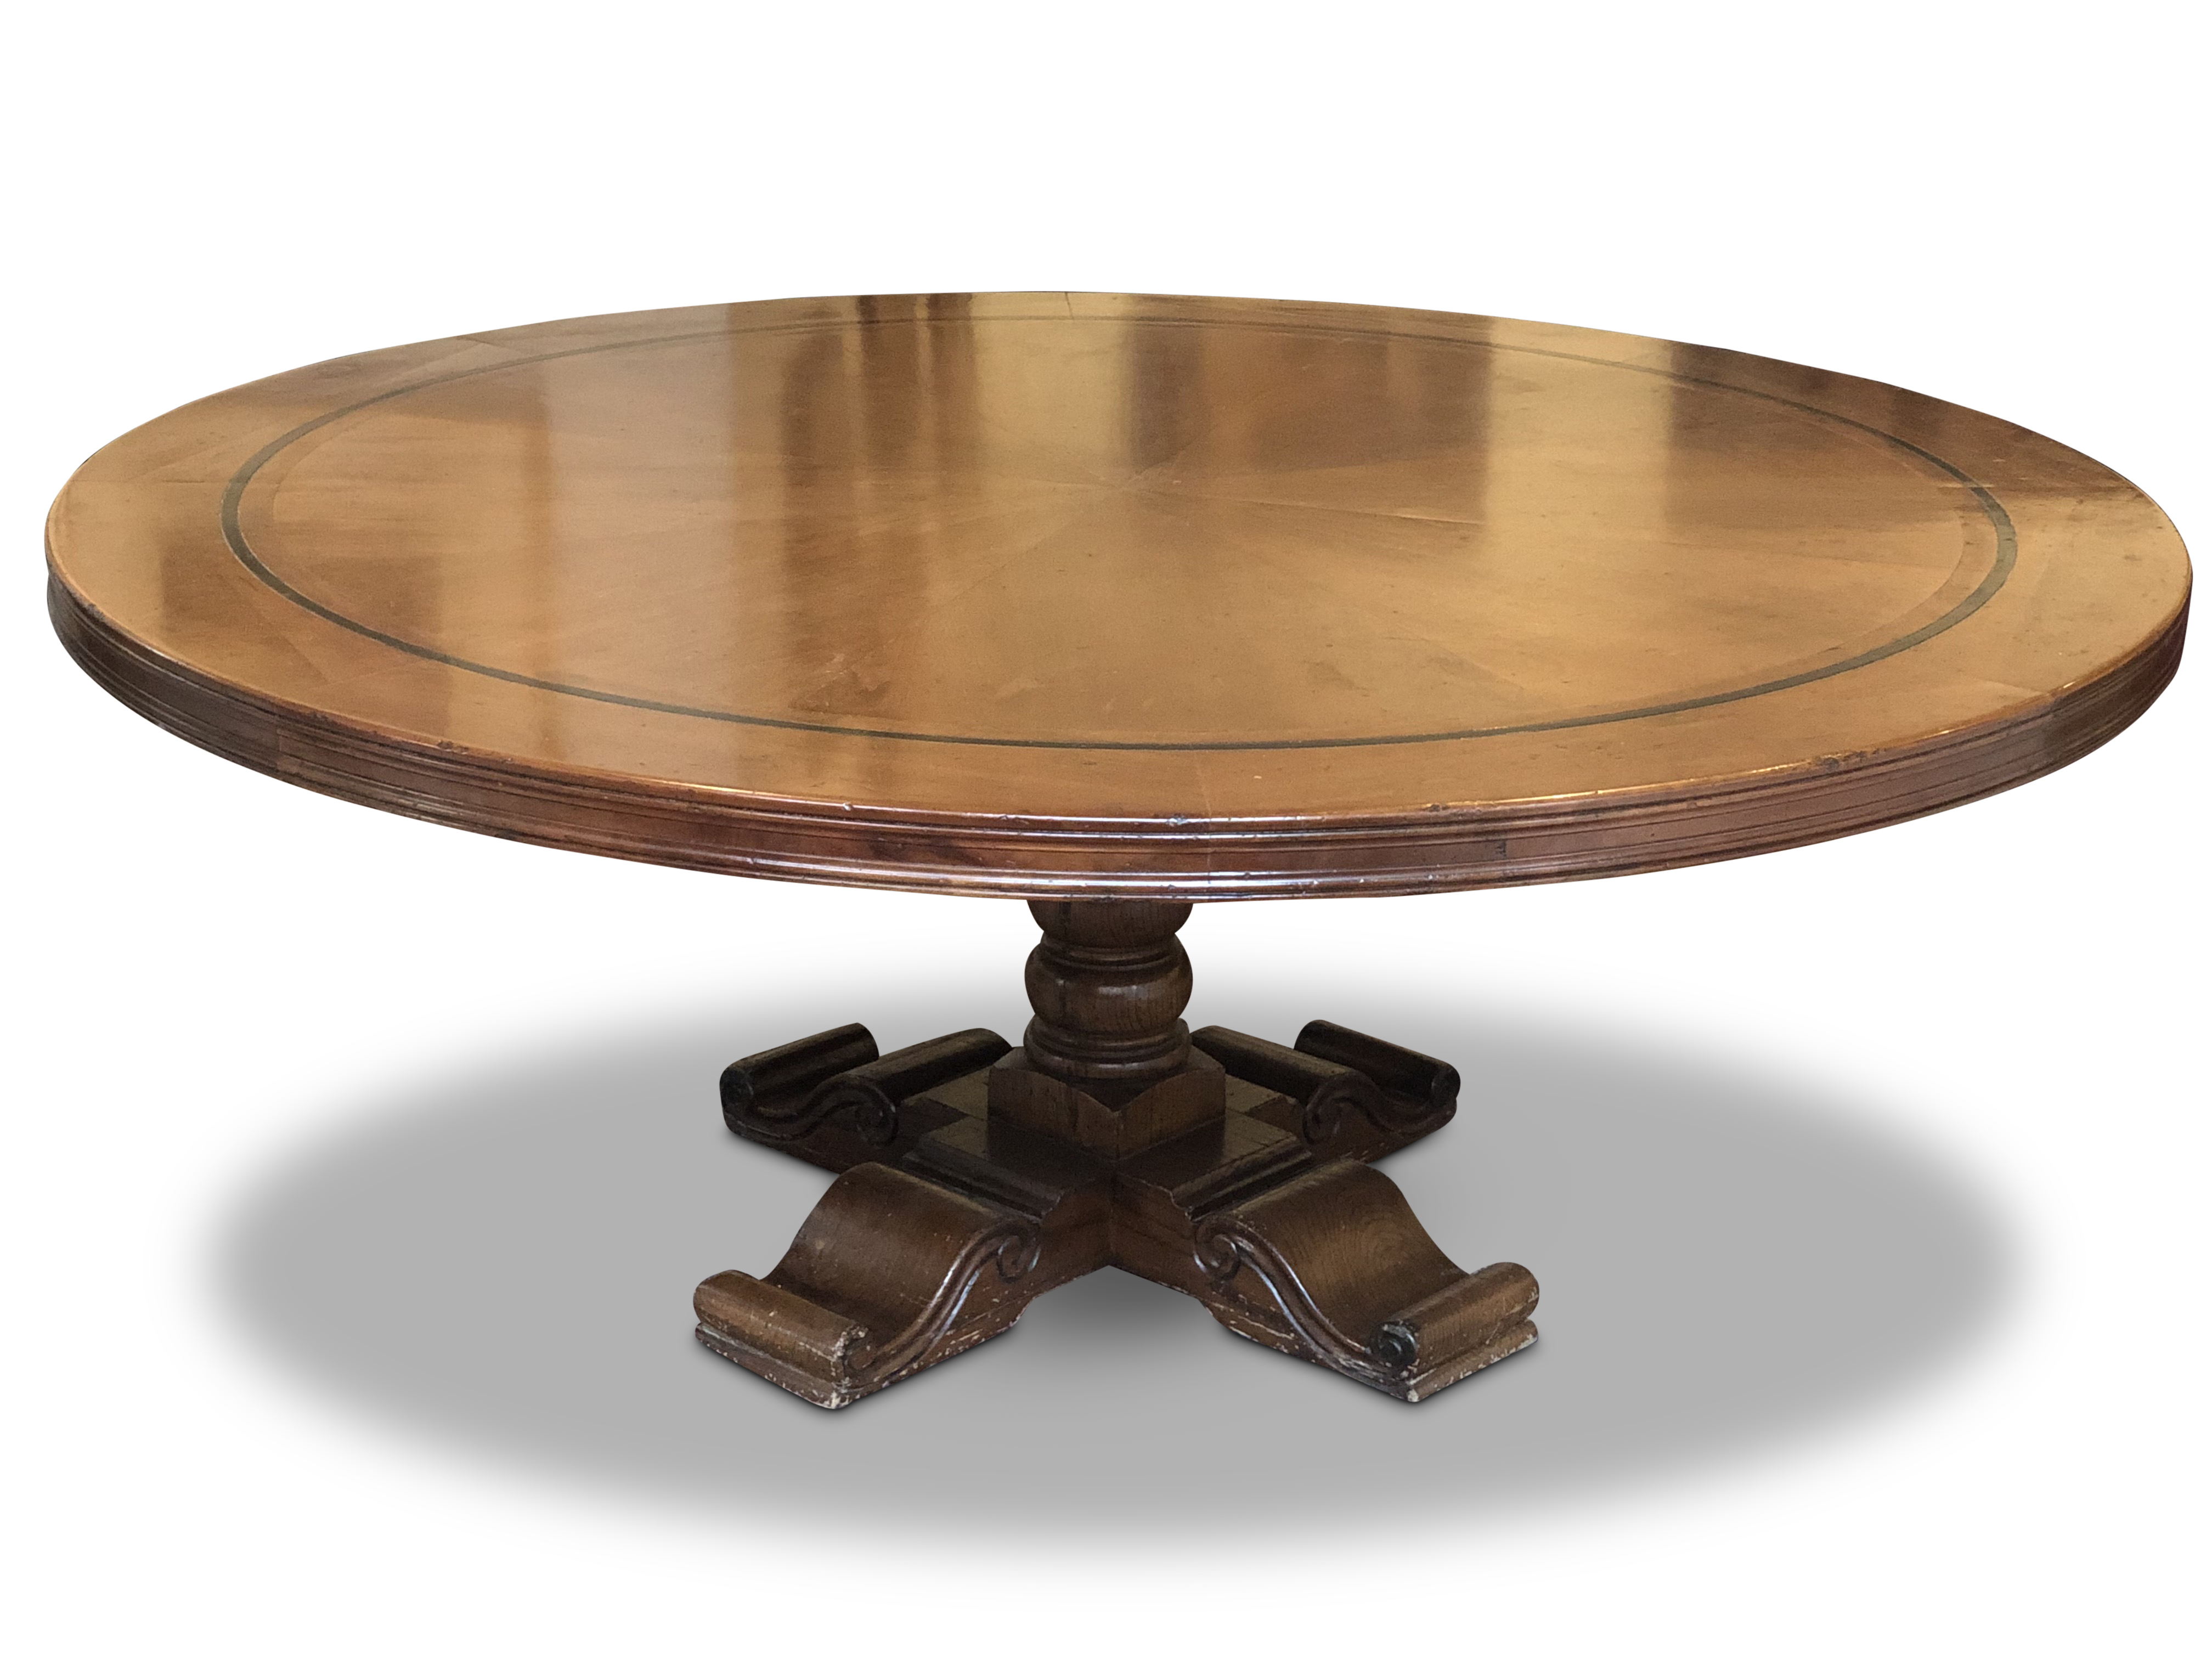 French Provincial Style Round Cherrywood Dining Table Valentines